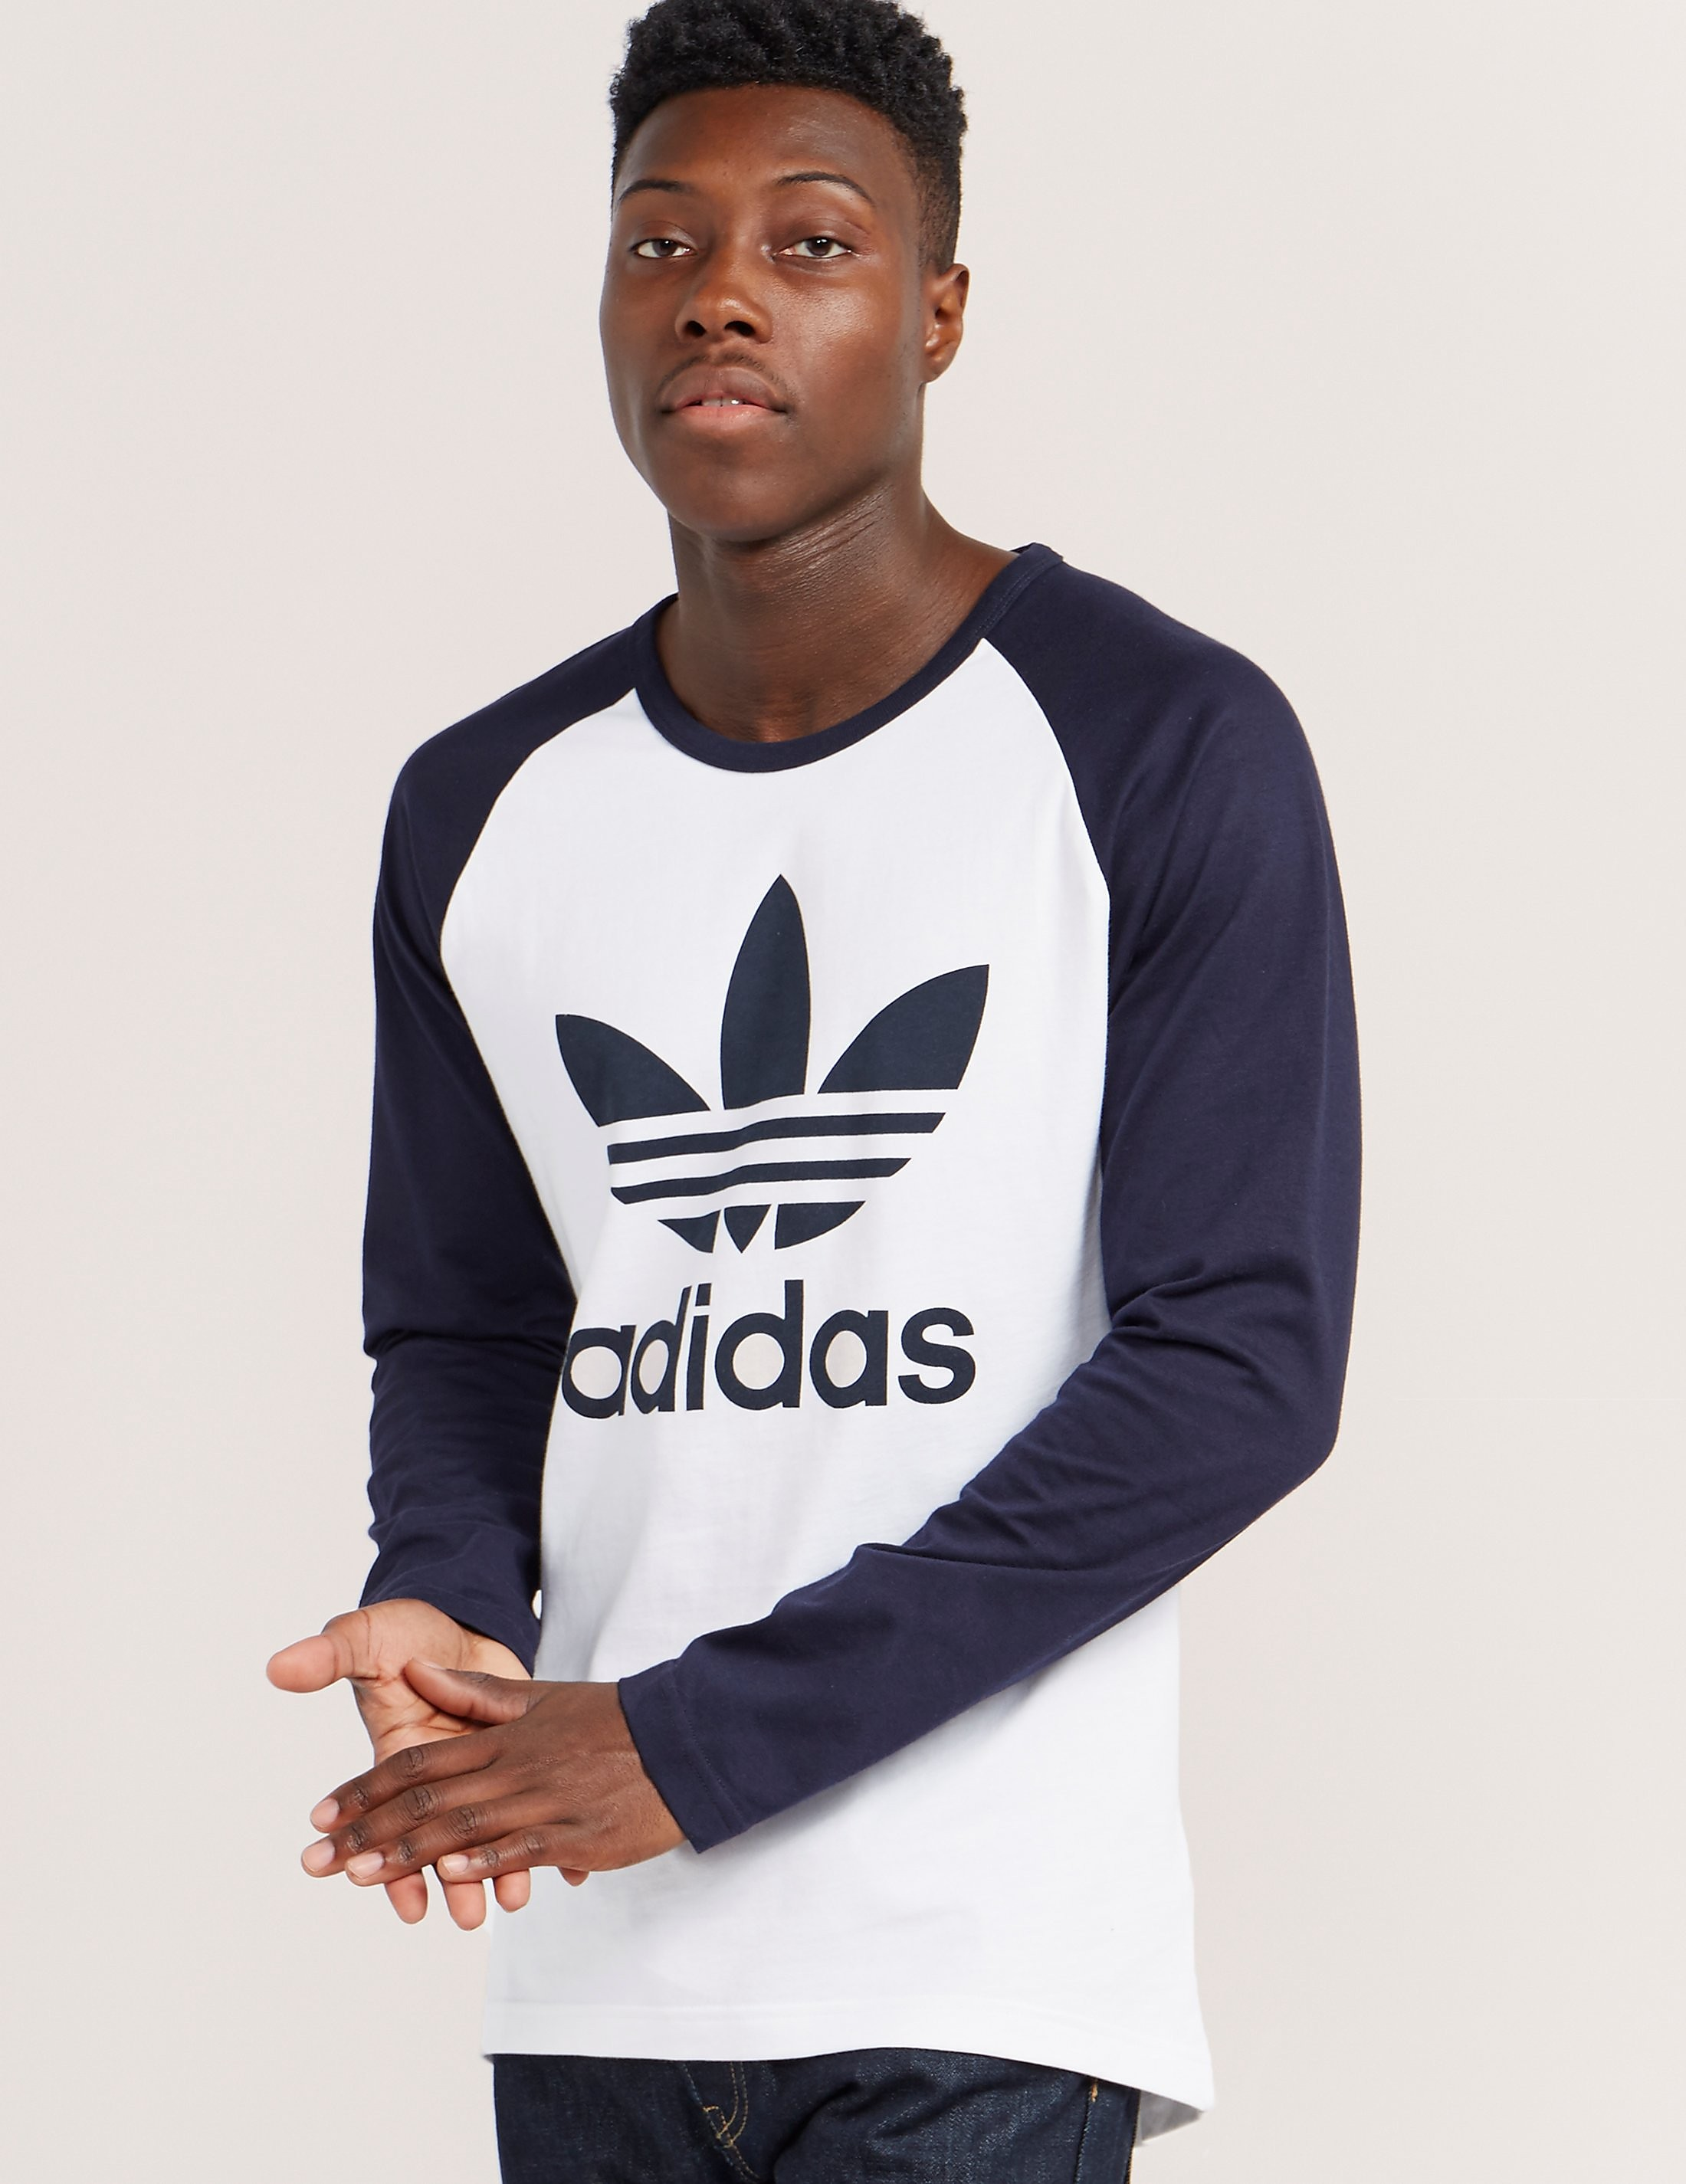 adidas Originals Long-Sleeved Trefoil T-Shirt